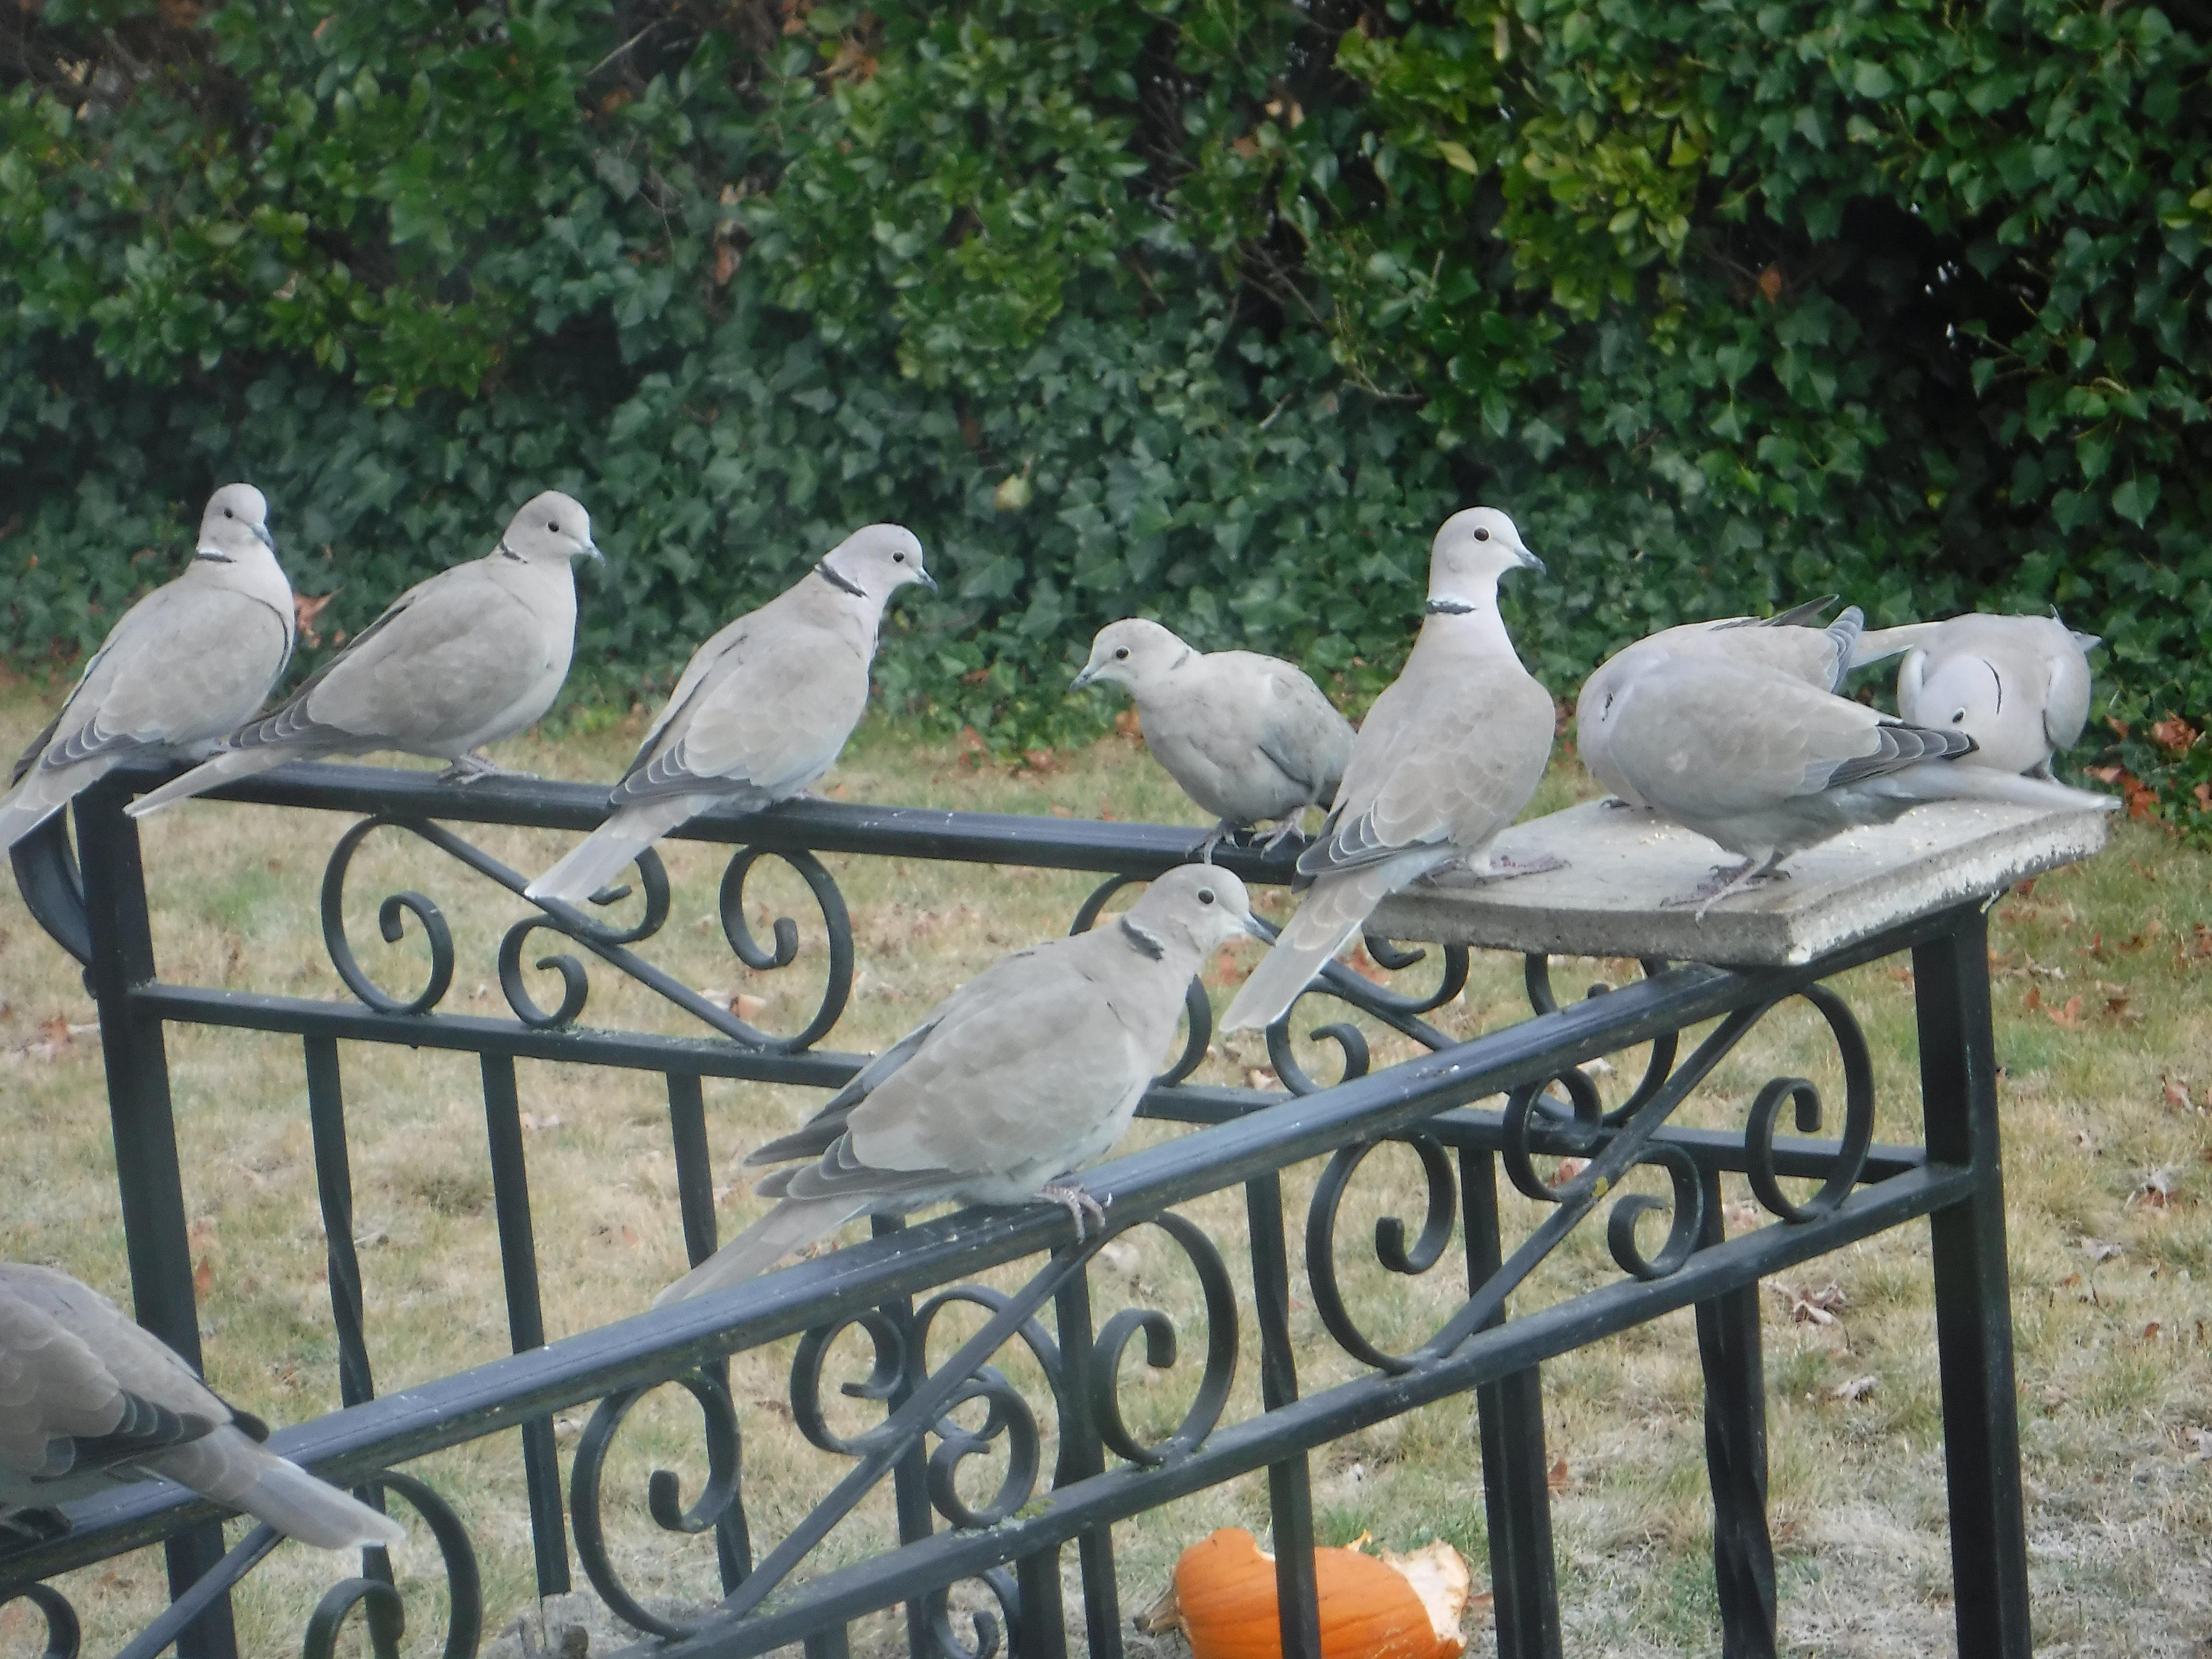 Tim McCartney took this photo of Eurasian collared doves in his Ashland yard on Dec. 7.